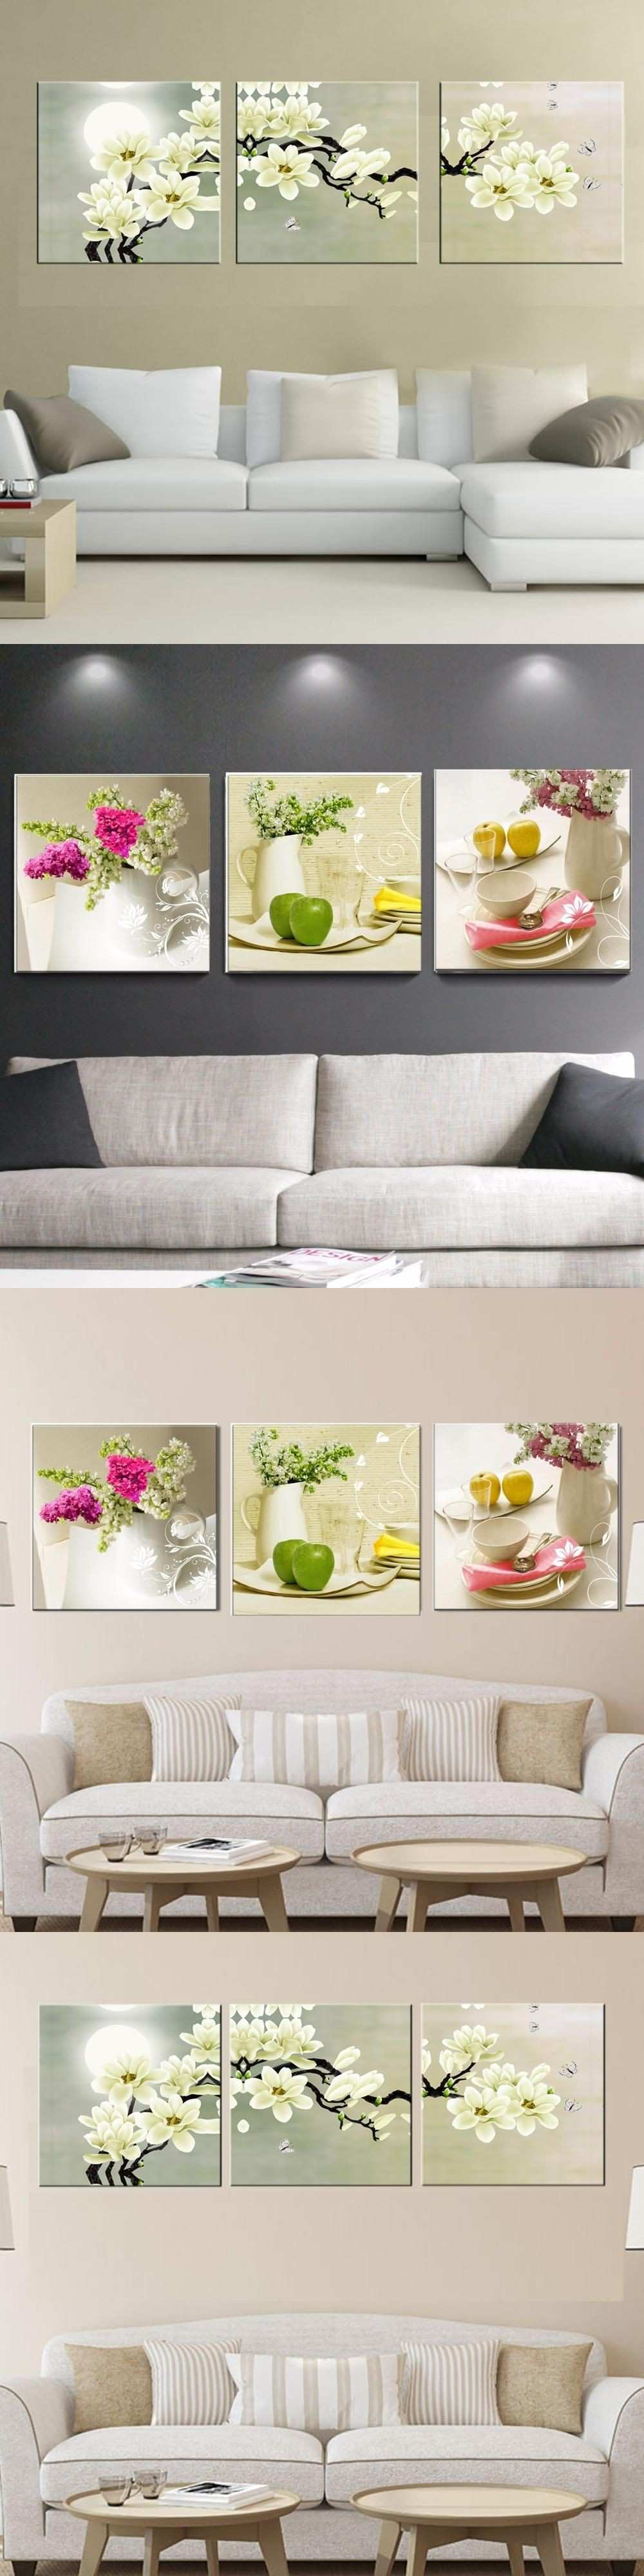 3 Pcs Canvas paintings for kitchen fruit wall decor modern flowers